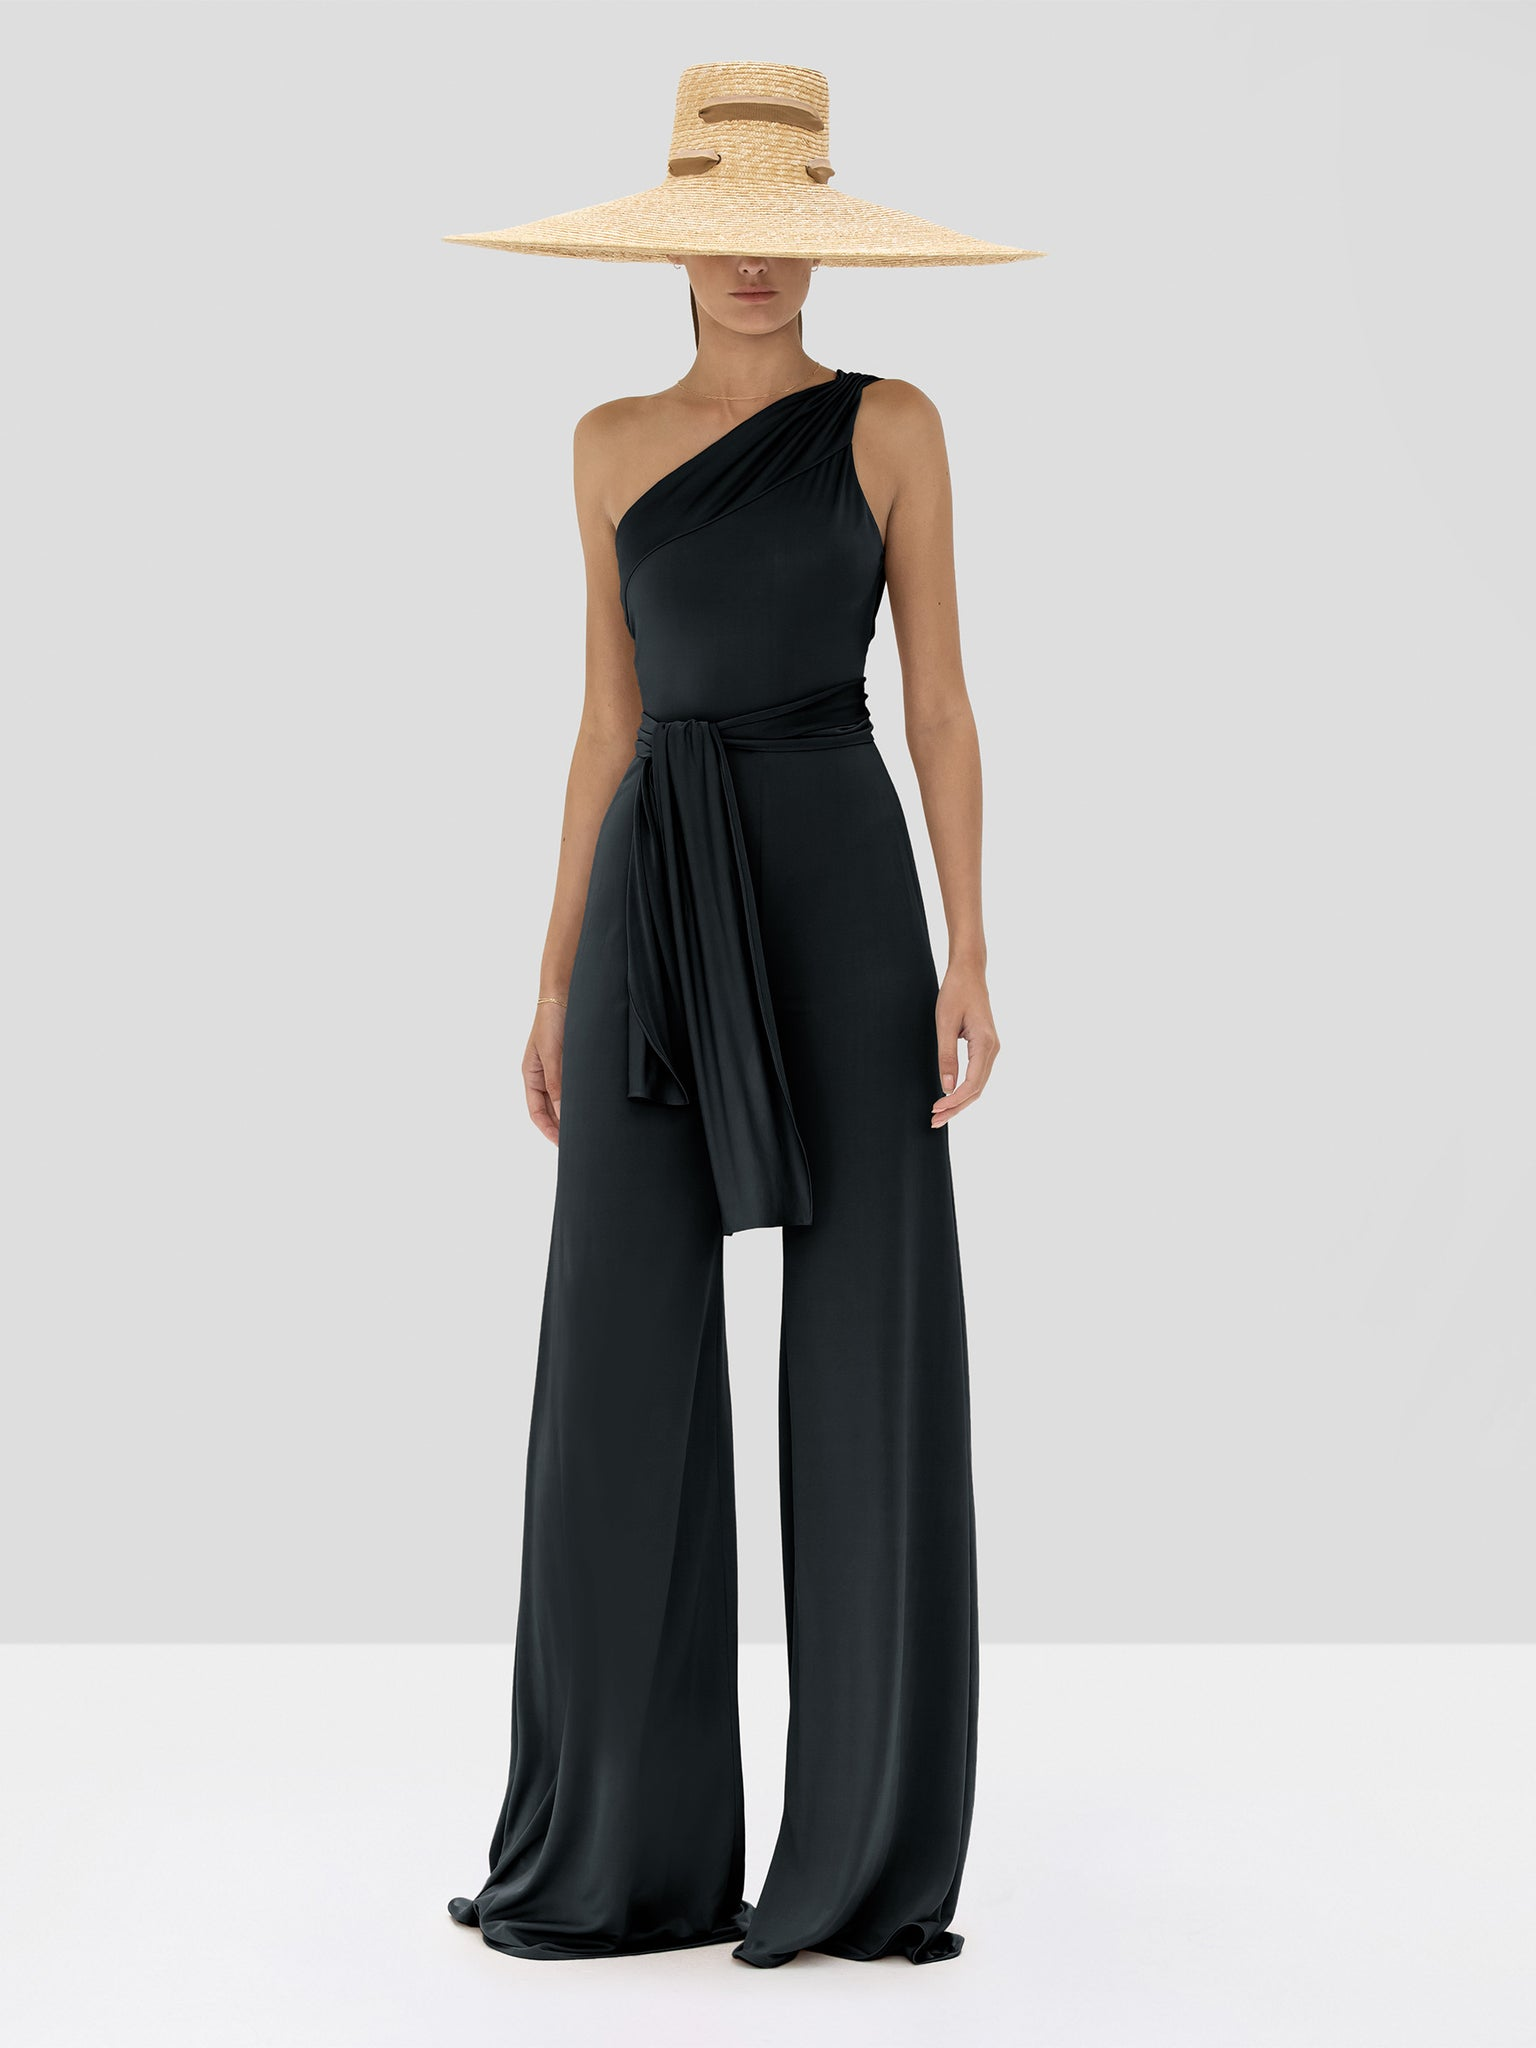 Alexis Parson Jumpsuit in Black from the Spring Summer 2020 Collection